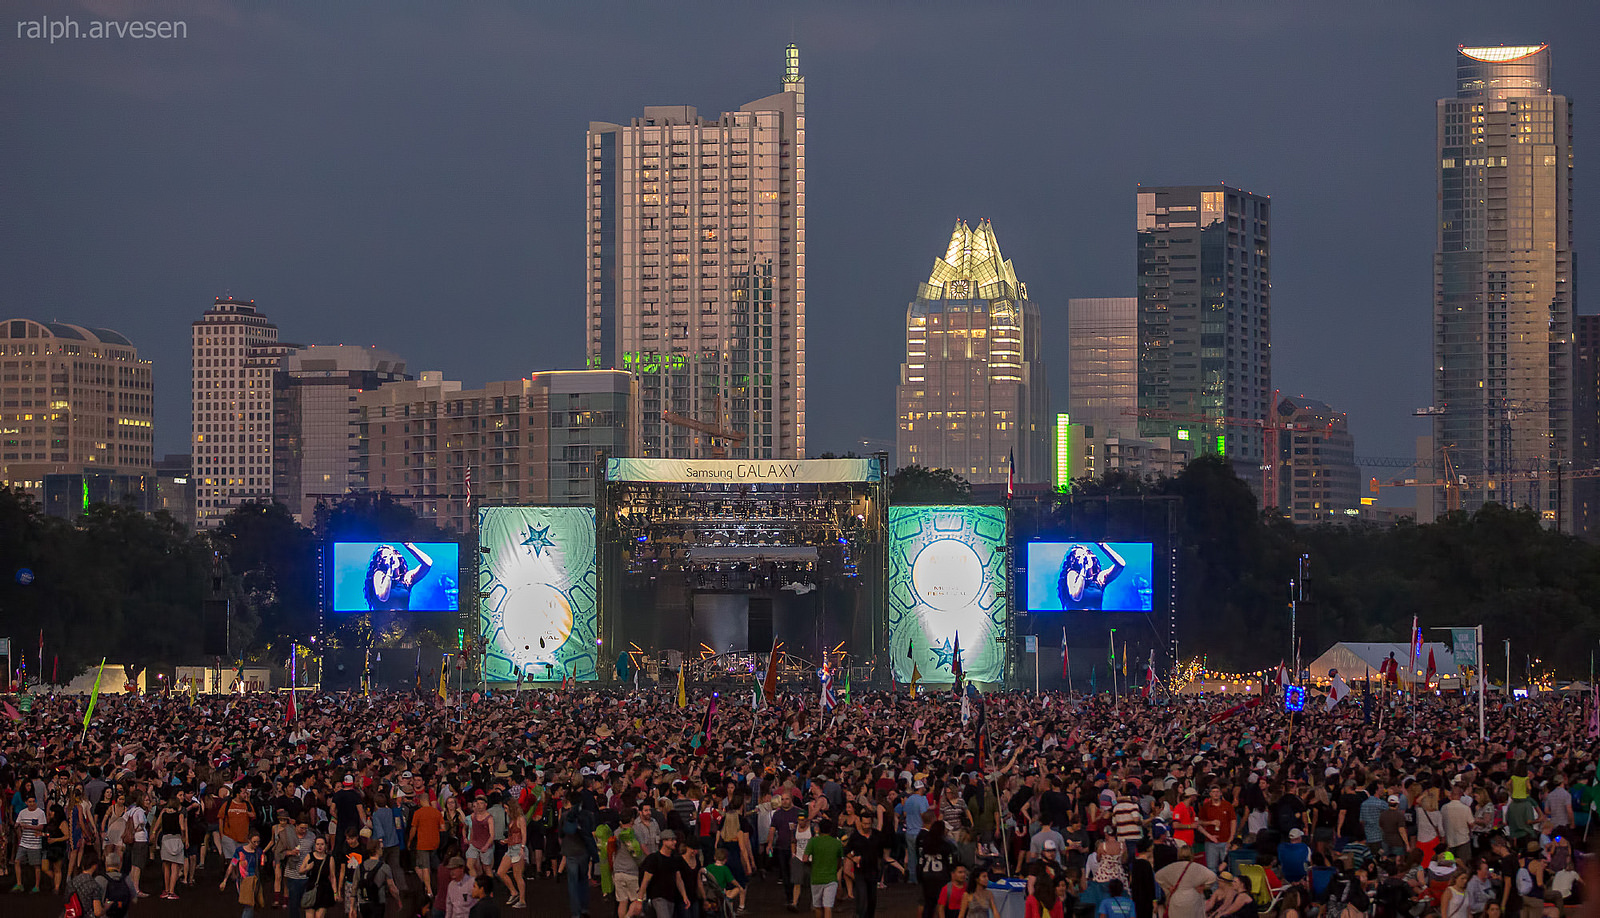 Lorde, ACL Music Festival Overview by Ralph Arvesen under CC BY 2.0